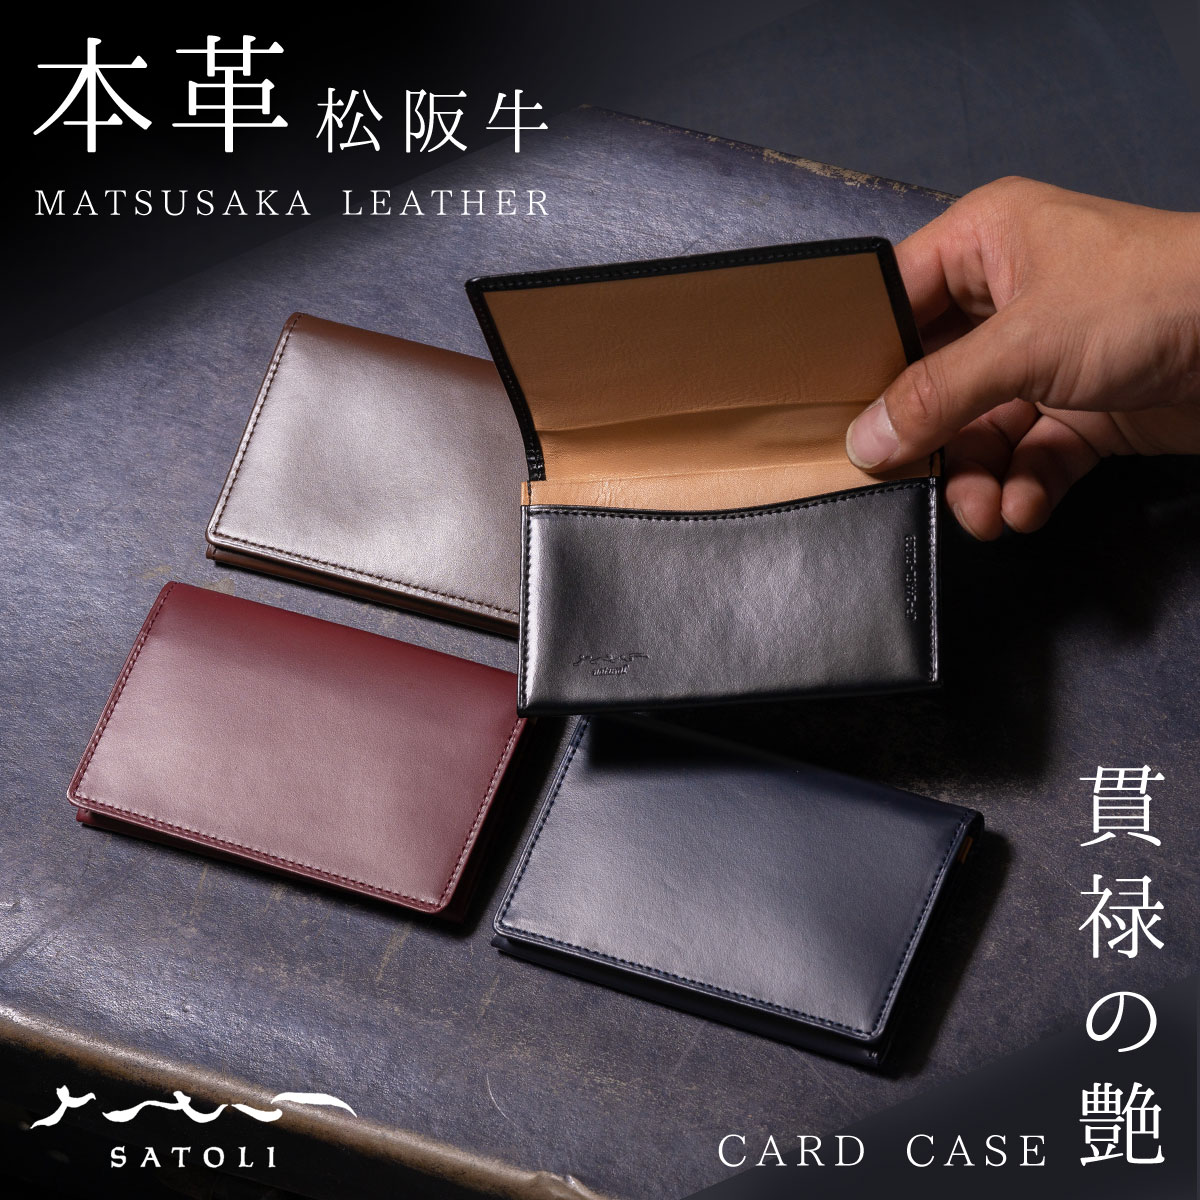 lighterya | Rakuten Global Market: Business card holder, card case ...